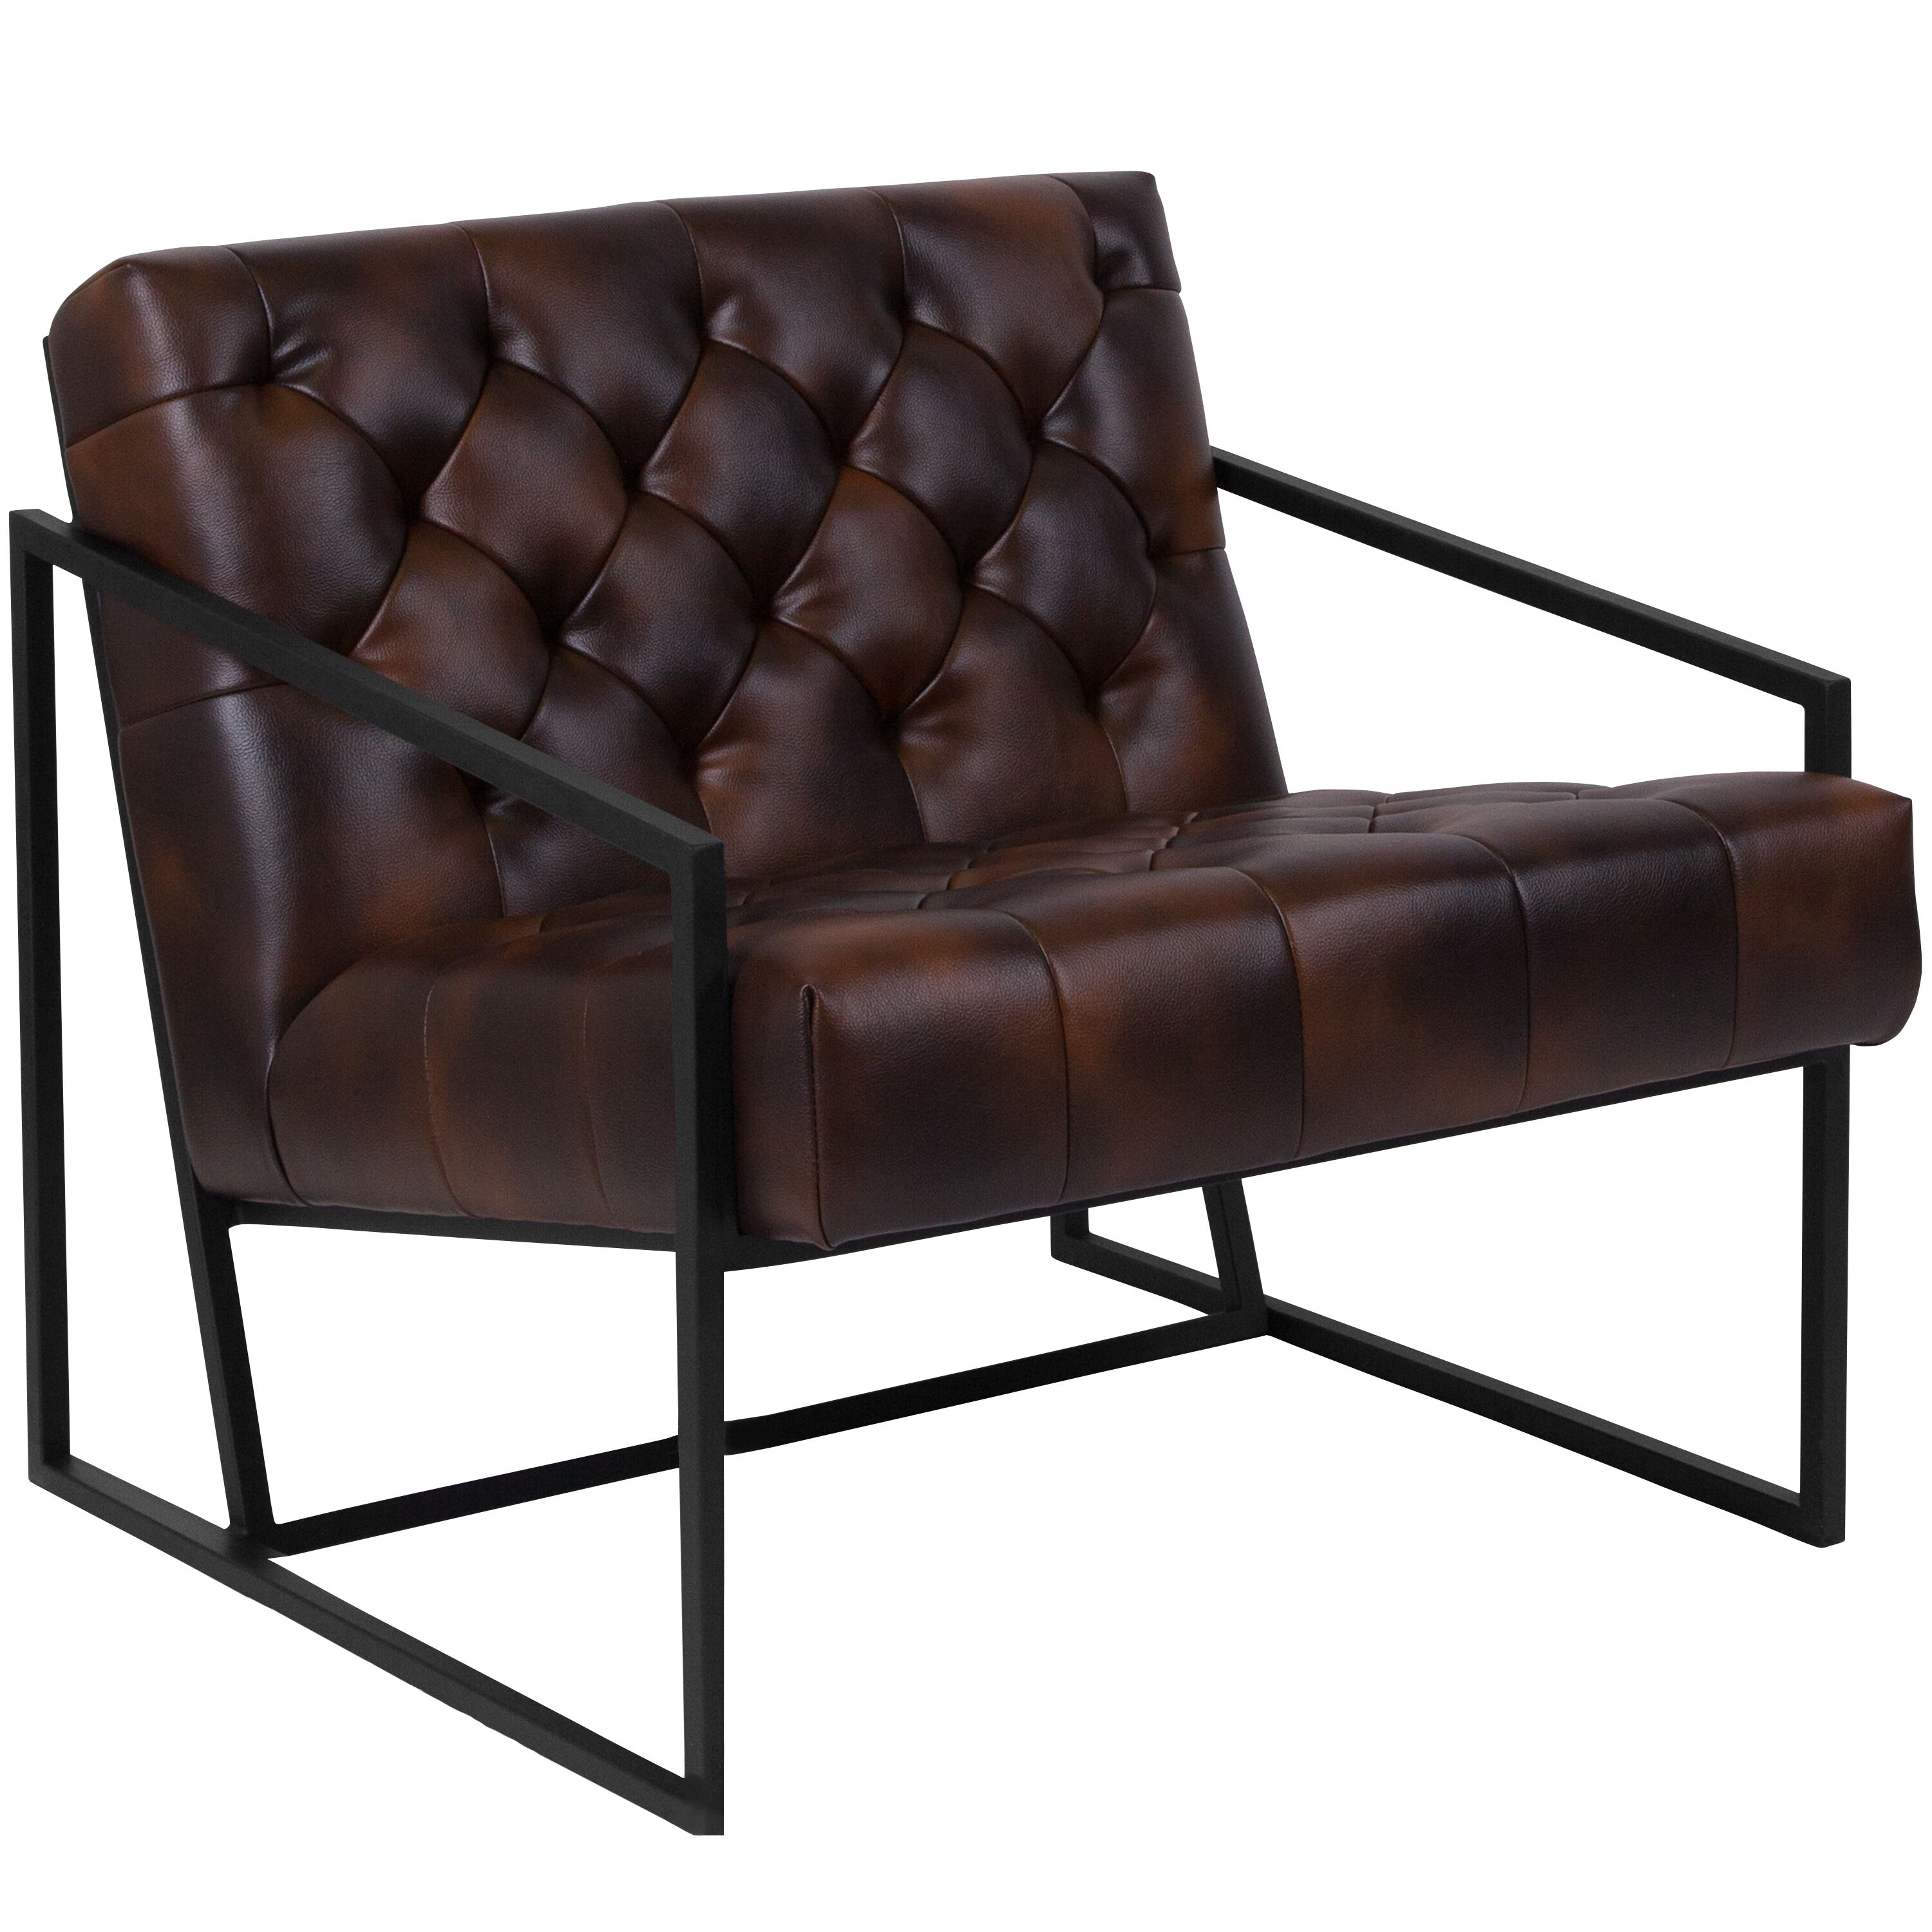 ... Our HERCULES Madison Series Bomber Jacket Leather Tufted Lounge Chair  Is On Sale Now.